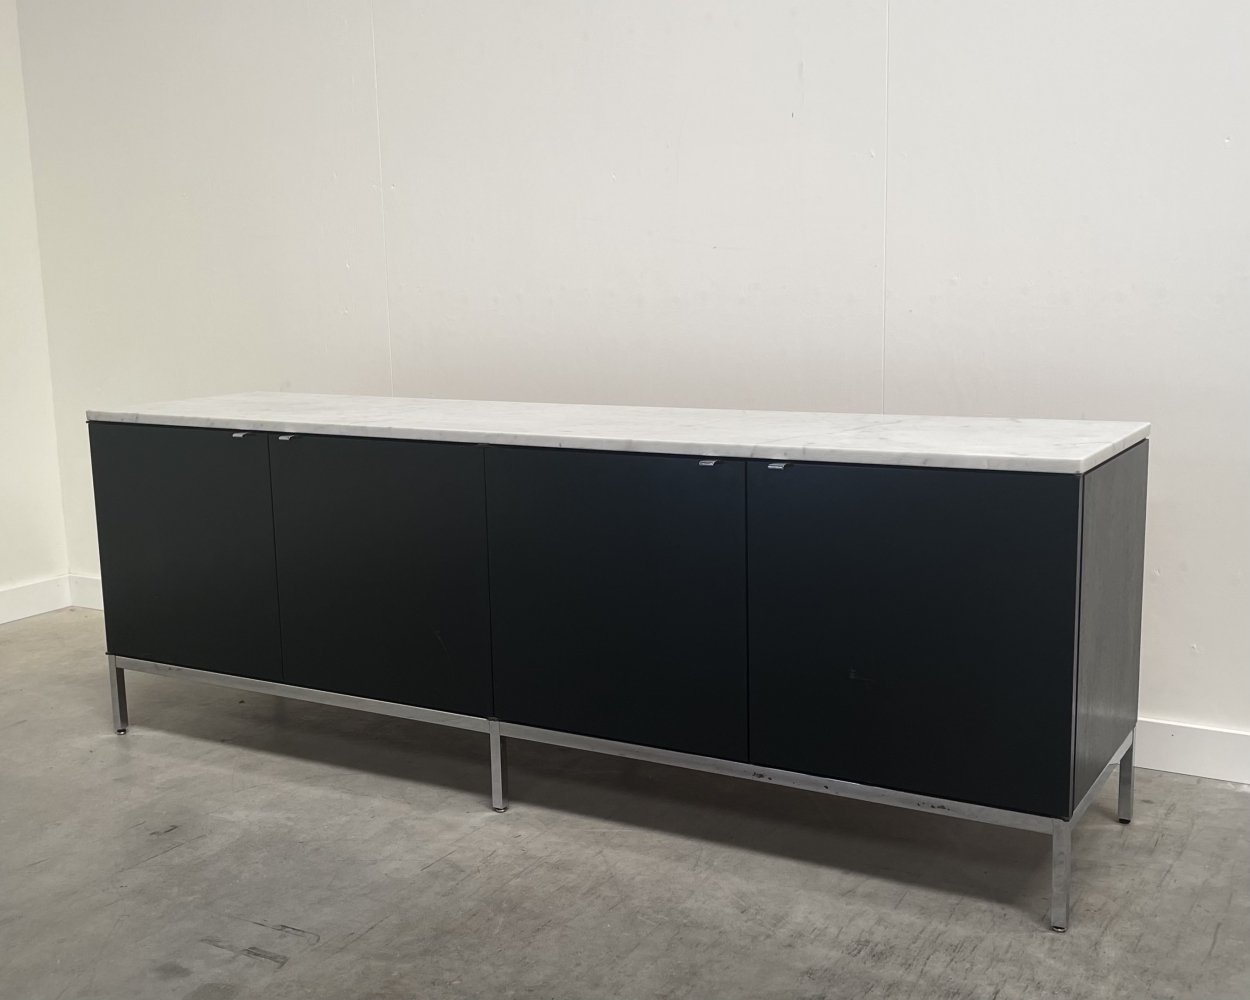 Mid century sideboard by Florence Knoll for Knoll International